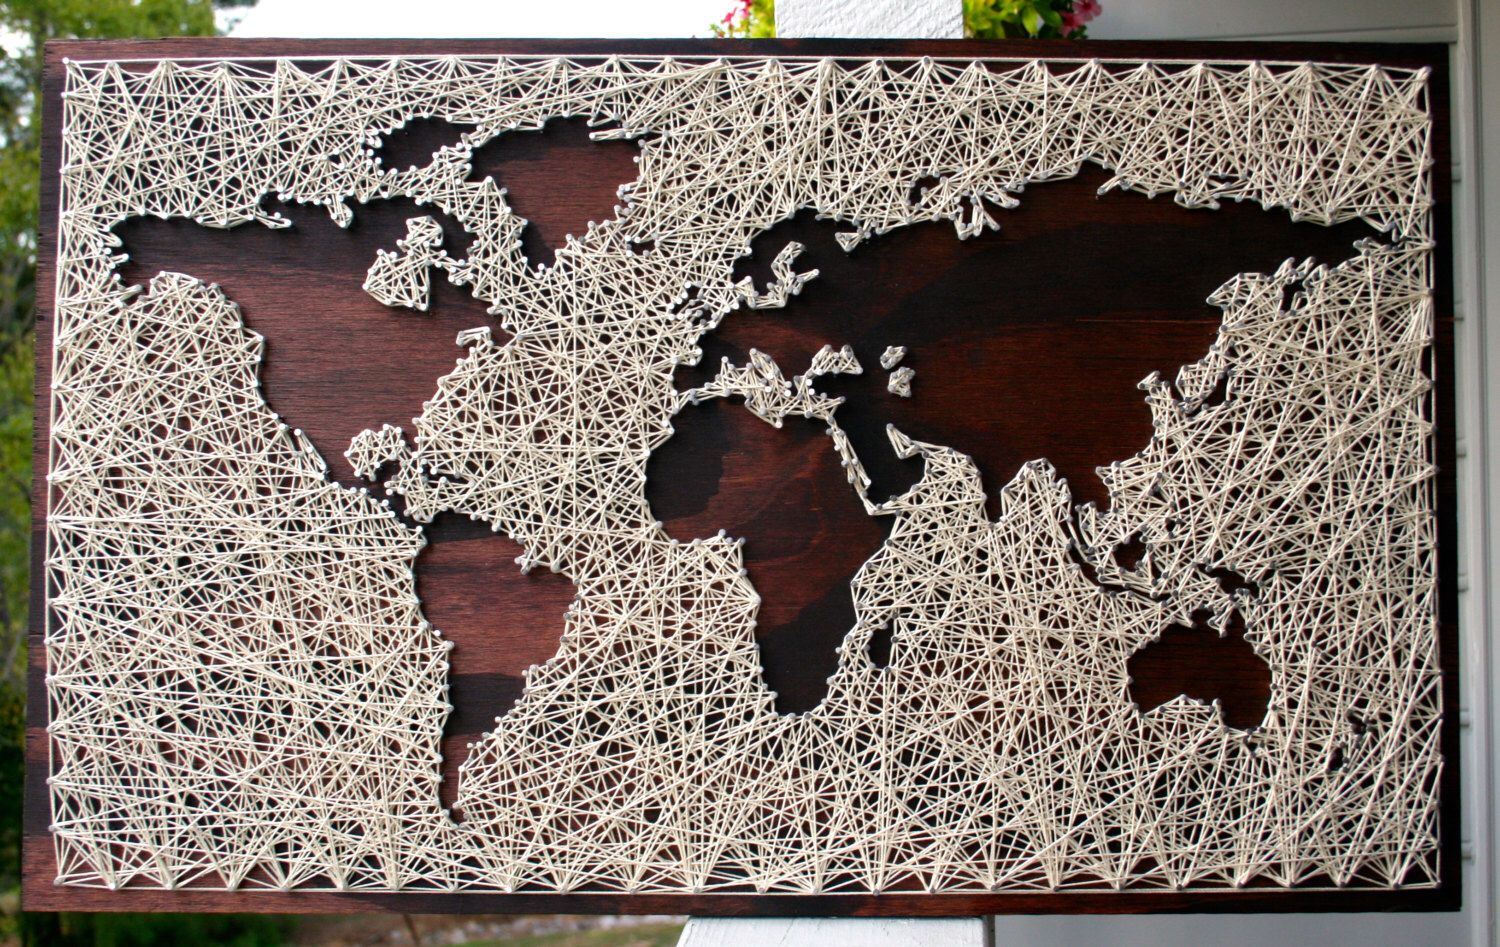 26x16 world map string art reverse string art by distantrealms on 26x16 world map string art reverse string art by distantrealms on etsy gumiabroncs Choice Image